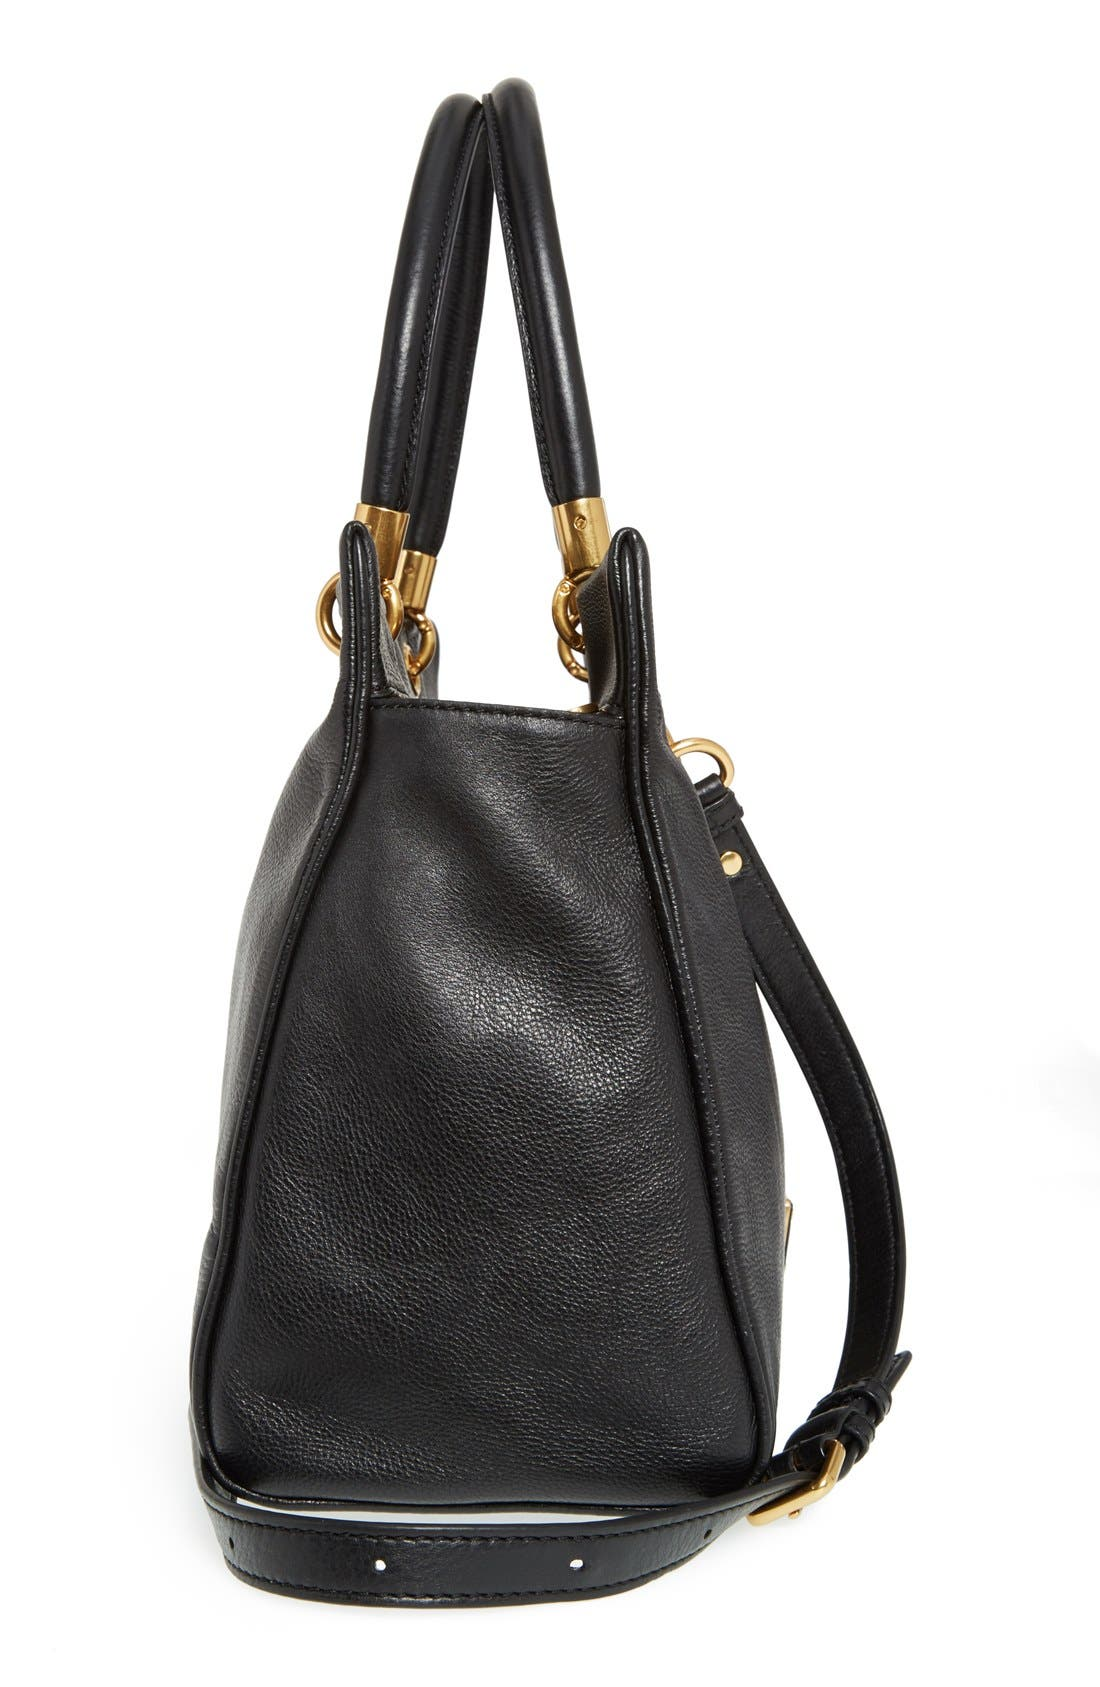 MARC JACOBS,                             MARC BY MARC JACOBS 'Too Hot to Handle' Tote,                             Alternate thumbnail 2, color,                             001